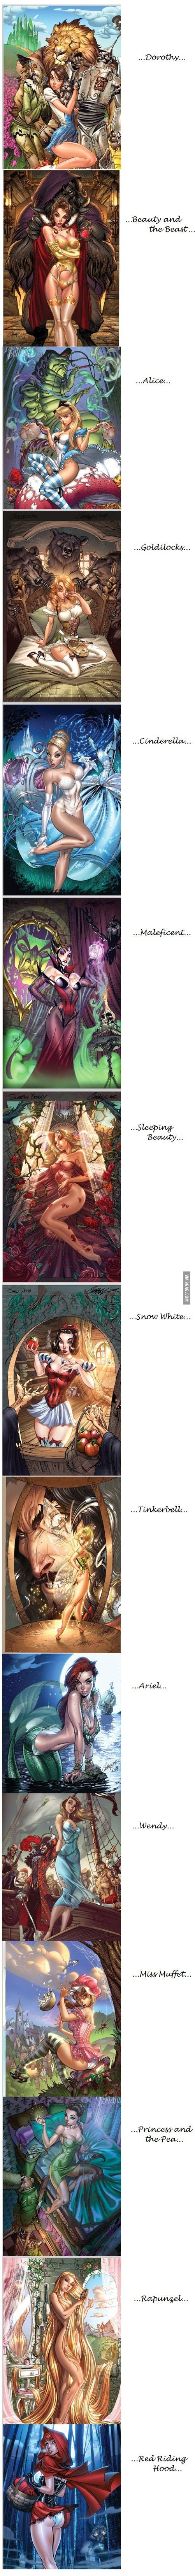 Just Disney Princesses